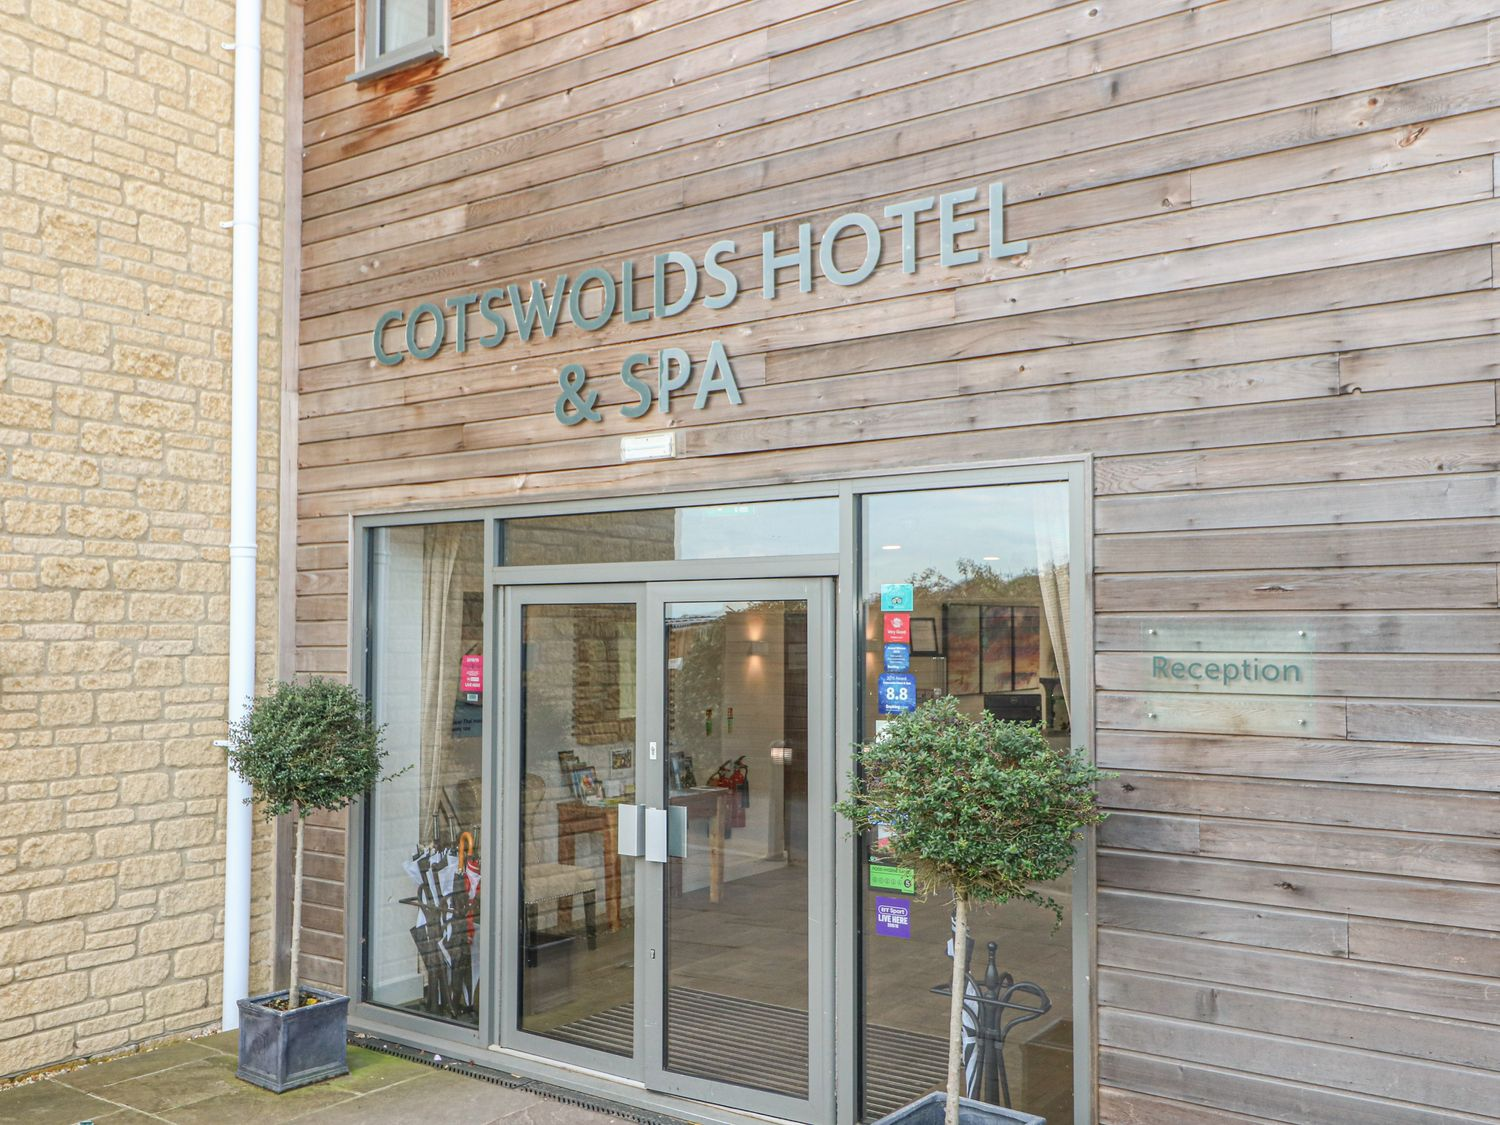 Cotswold Club Apartment (2 Bedroom) - Cotswolds - 1036943 - photo 1